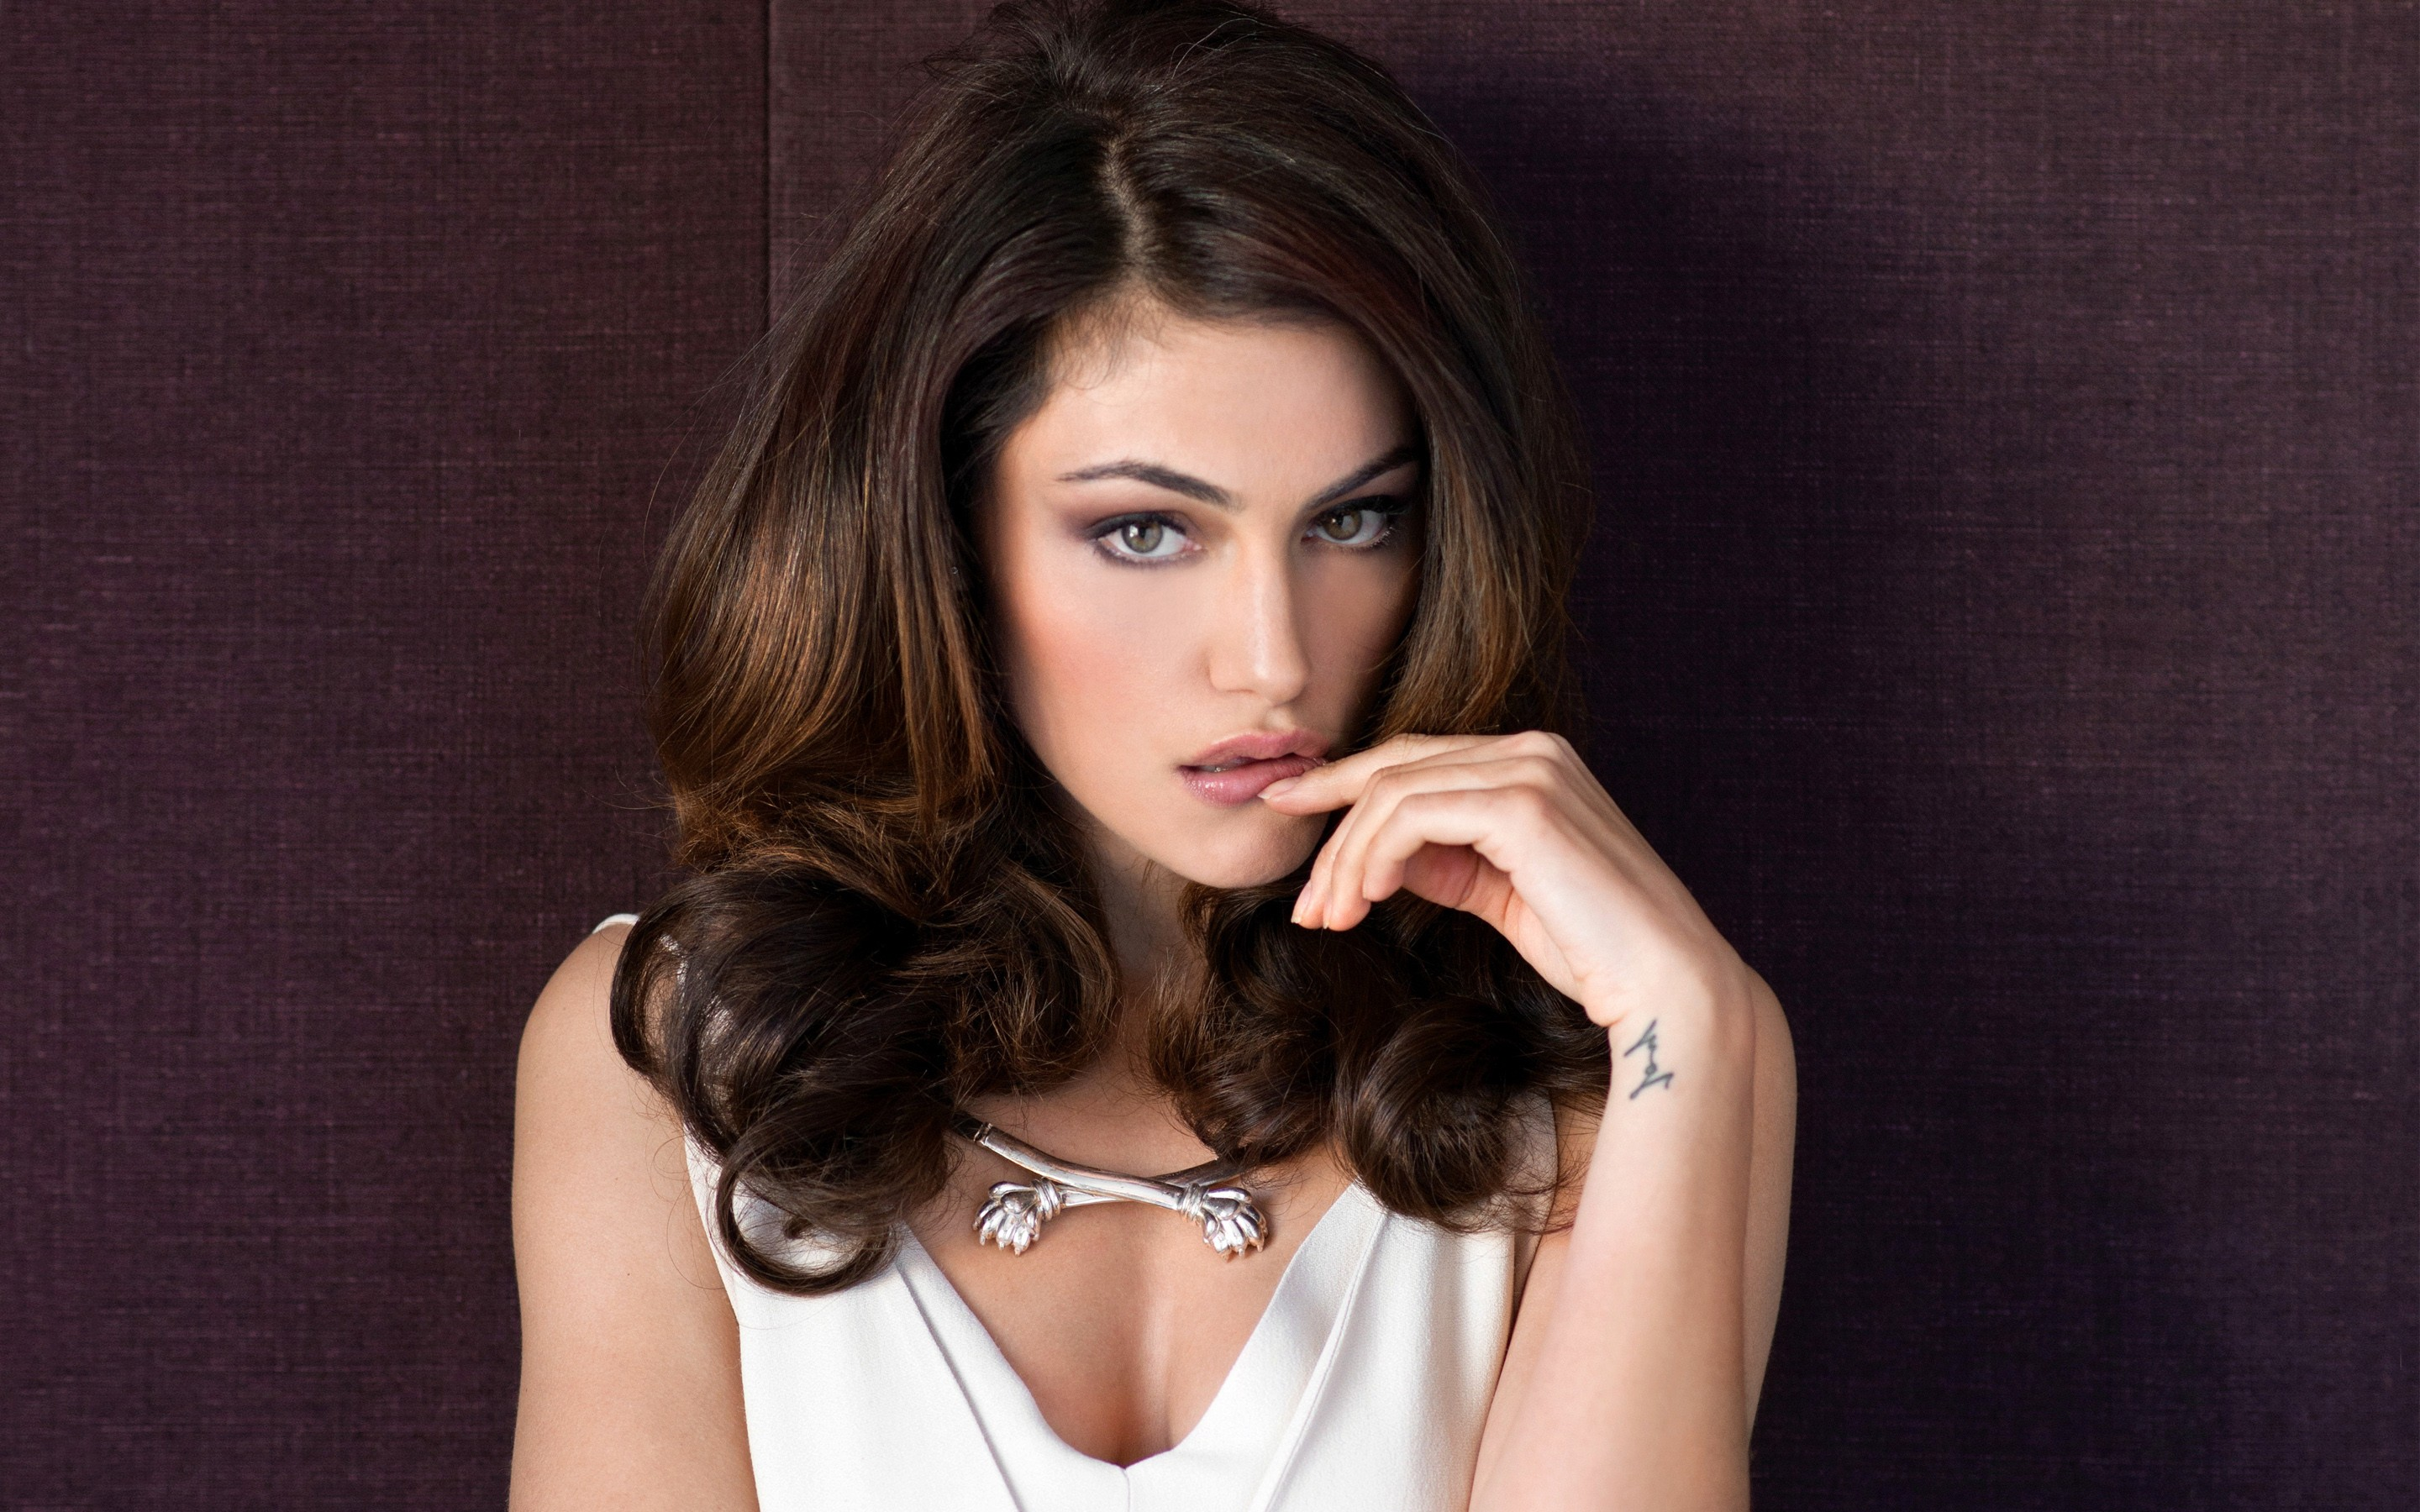 Phoebe tonkin hot   Phoebe Tonkin   Lets Lay Out By The